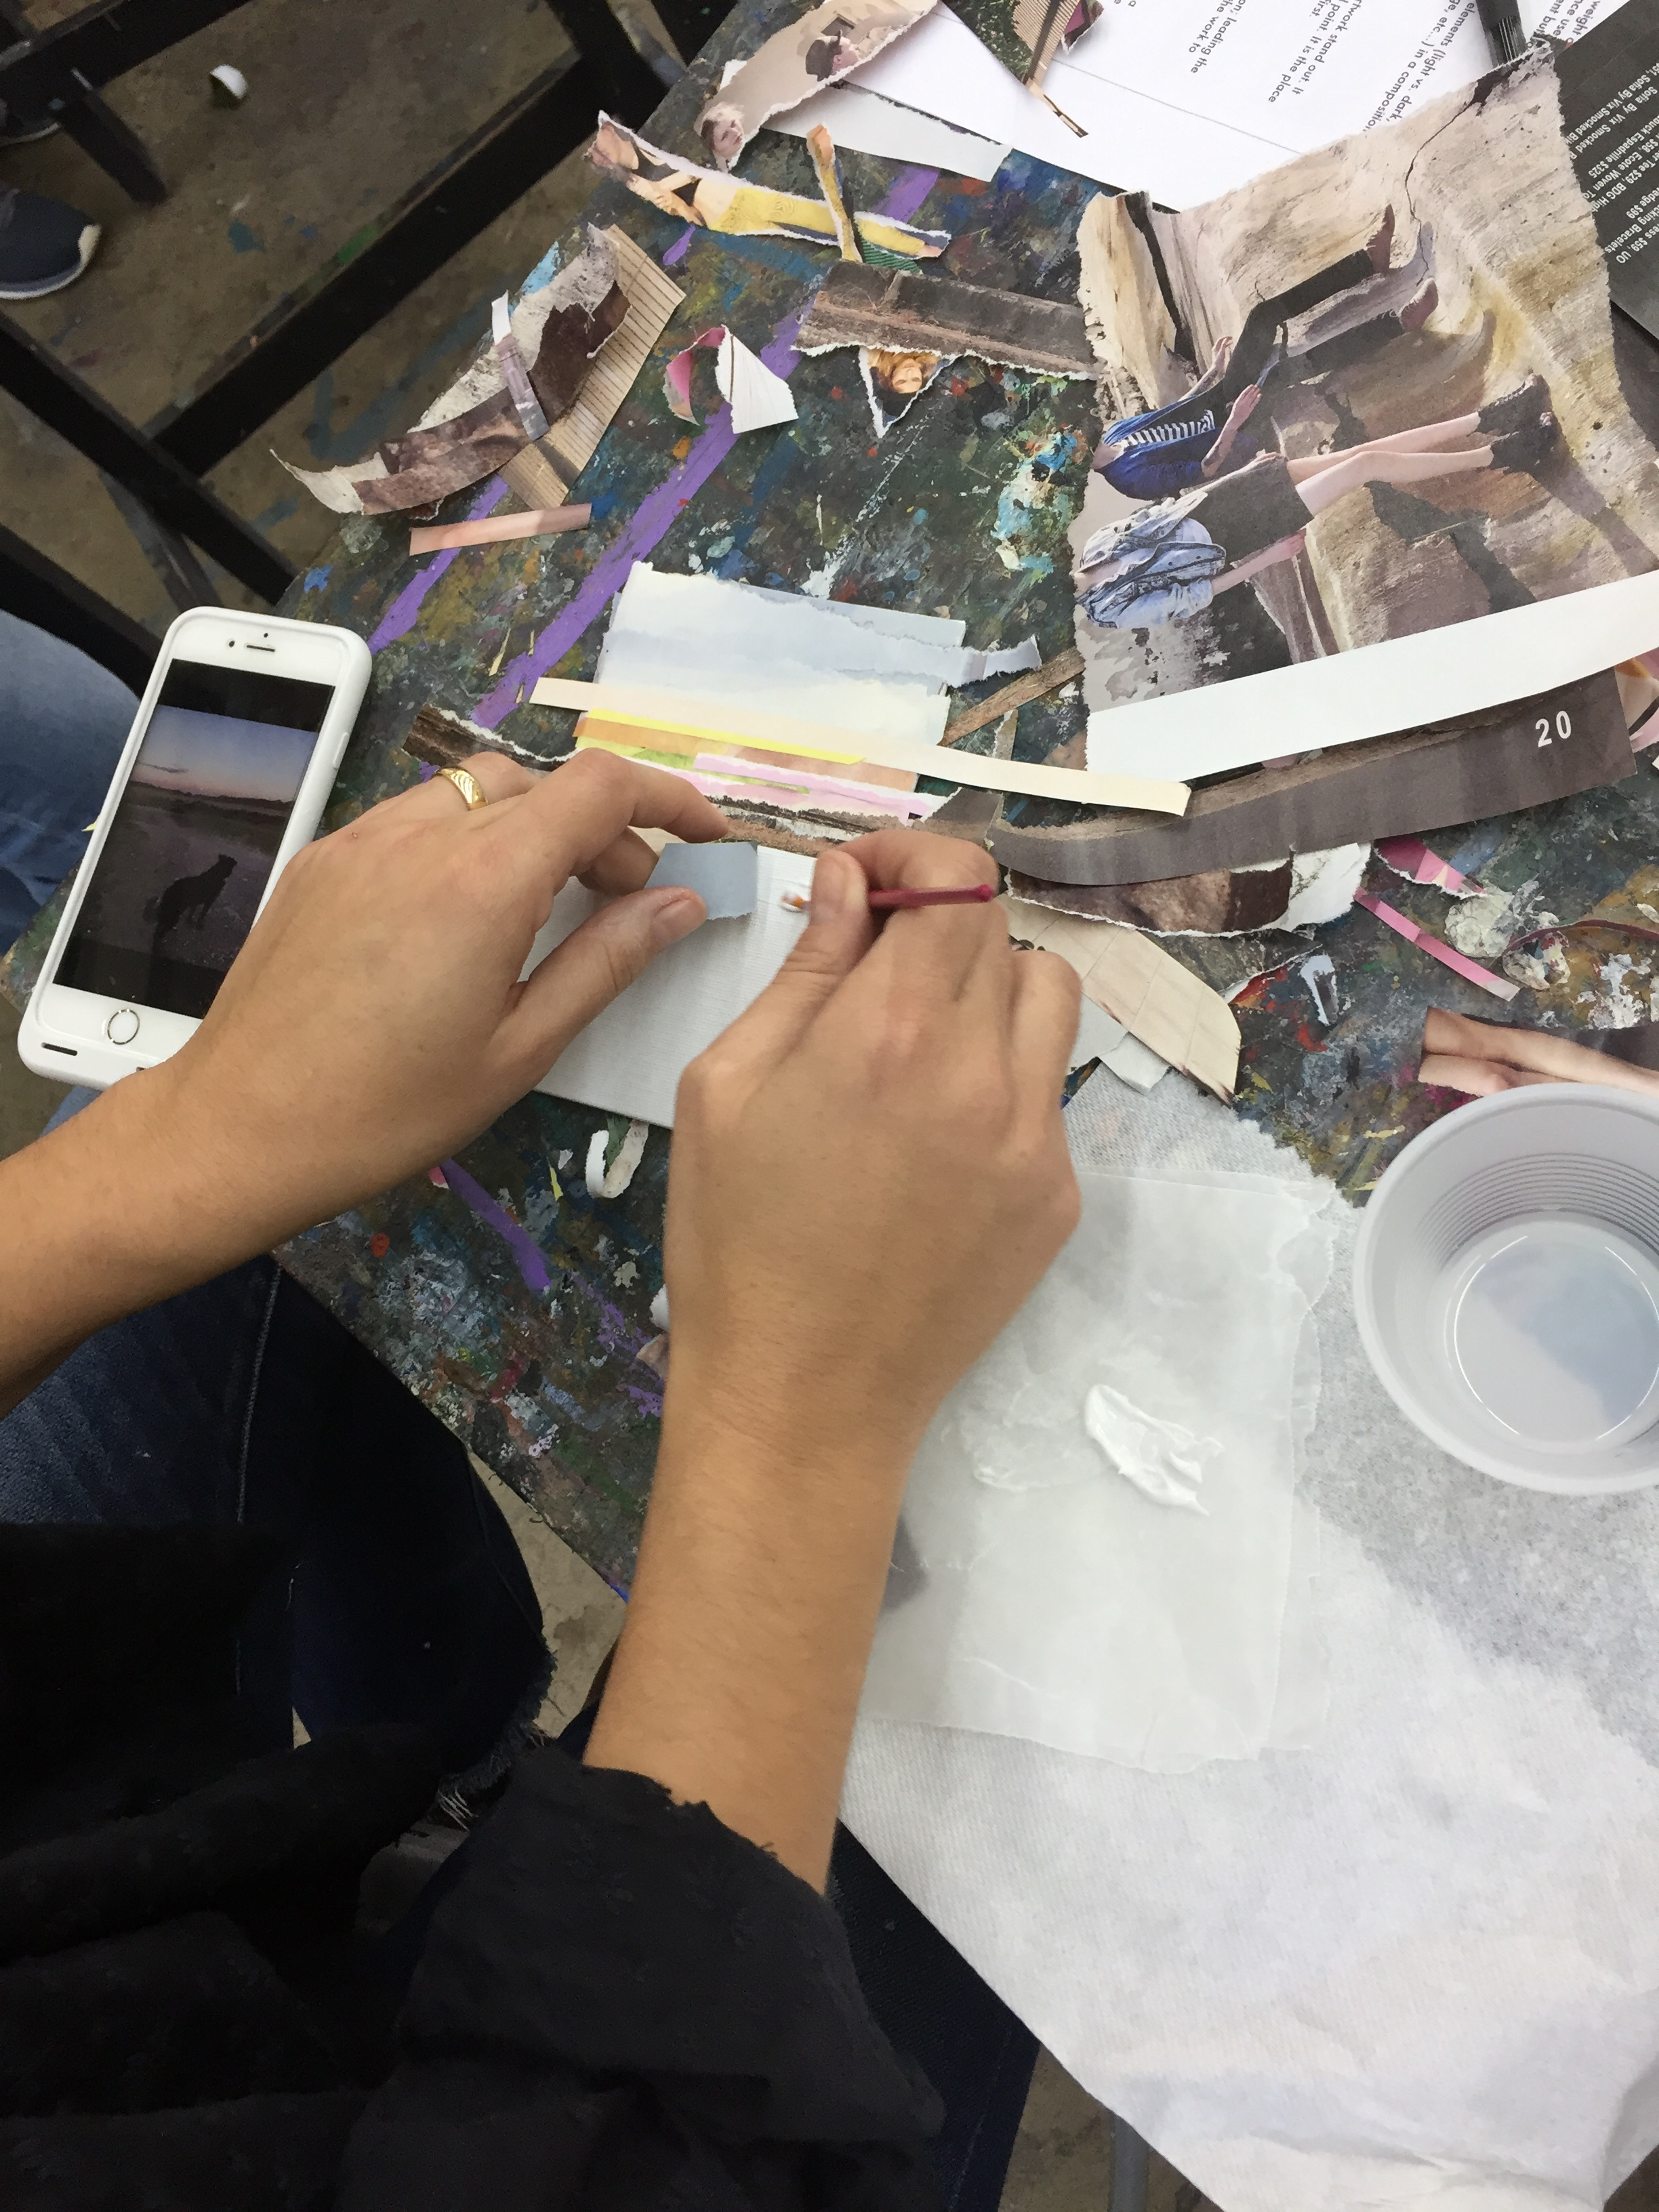 painting with glue